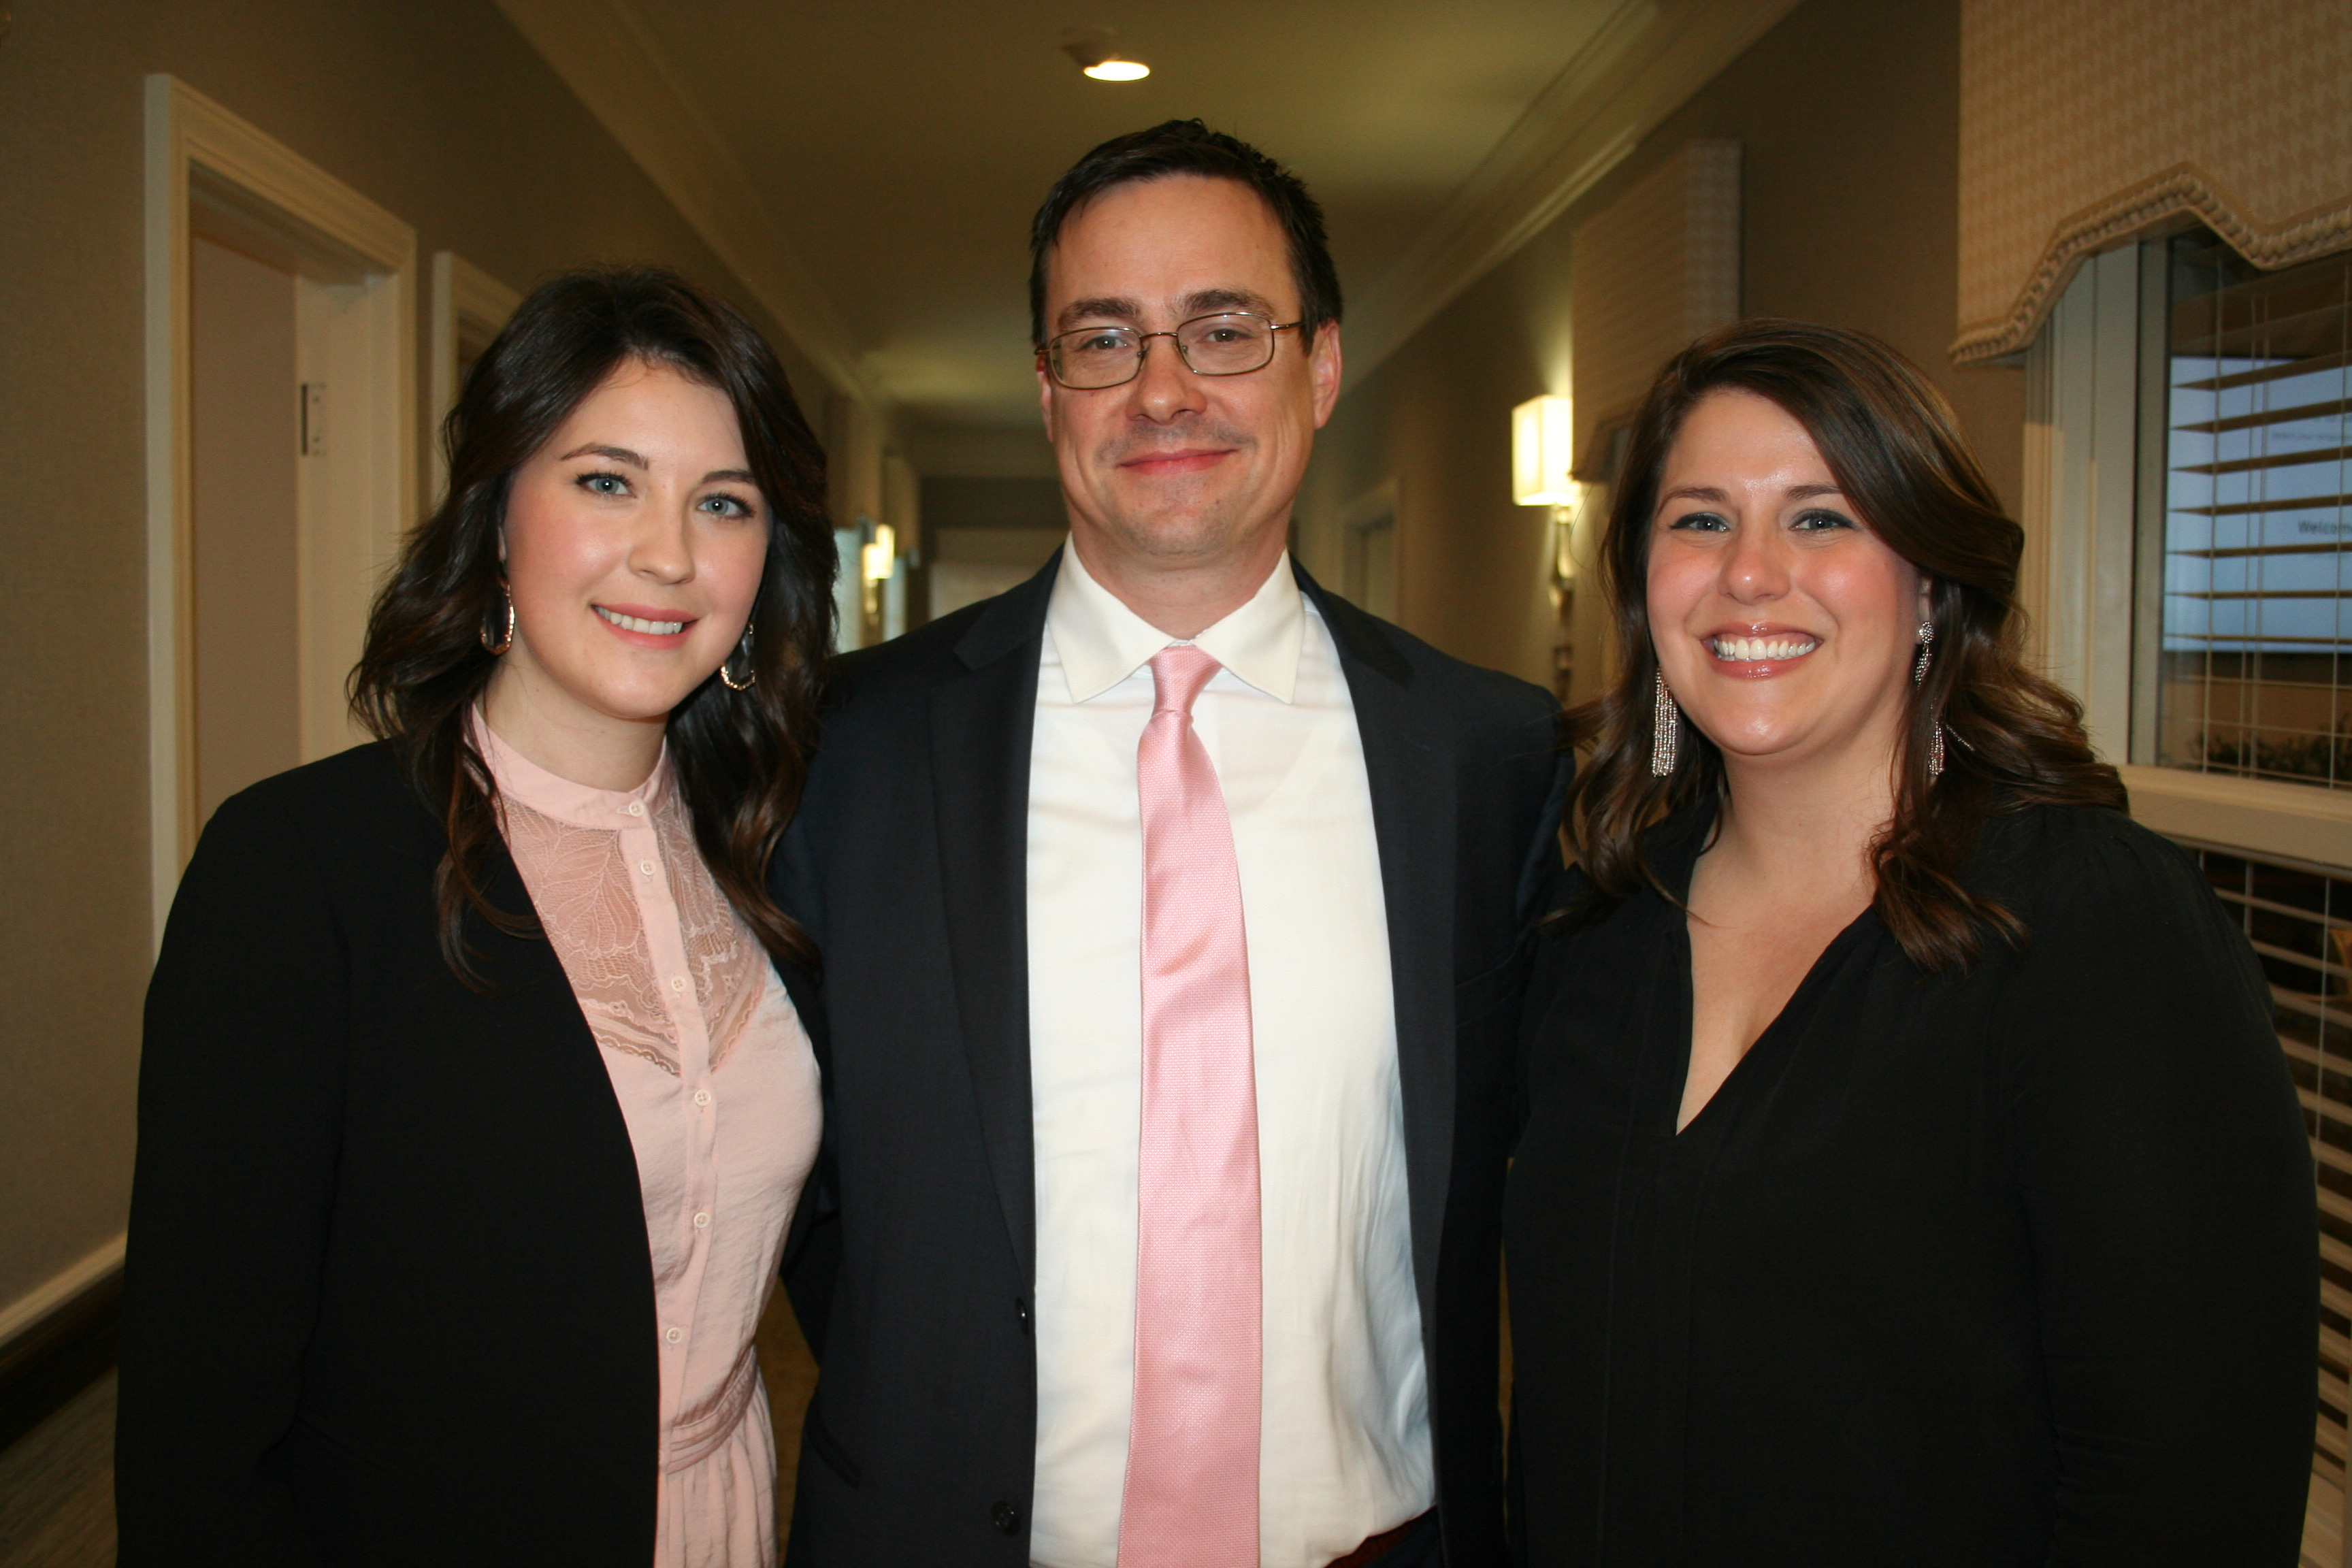 Wellmore Executive Director Ashley Seeds (left) poses with fellow staff members Jack Myers and Emilee Padget, who are both lifestyle advisors at the facility.